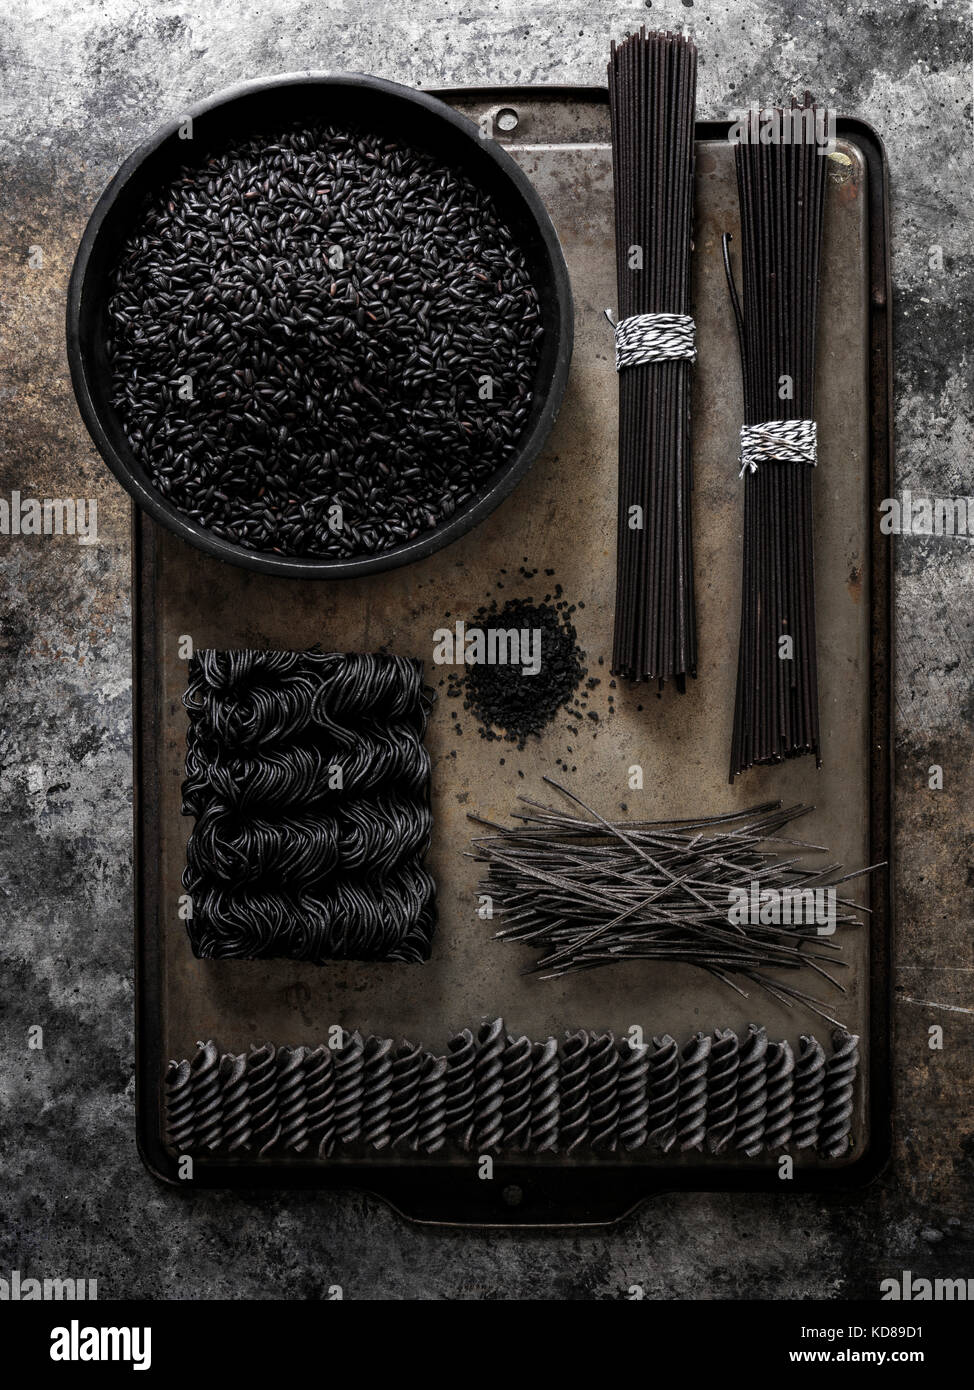 A geometric layout of black pastas (rice, spaghetti, ramen, etc…) on a dark metal surface with a lot of texture - Stock Image